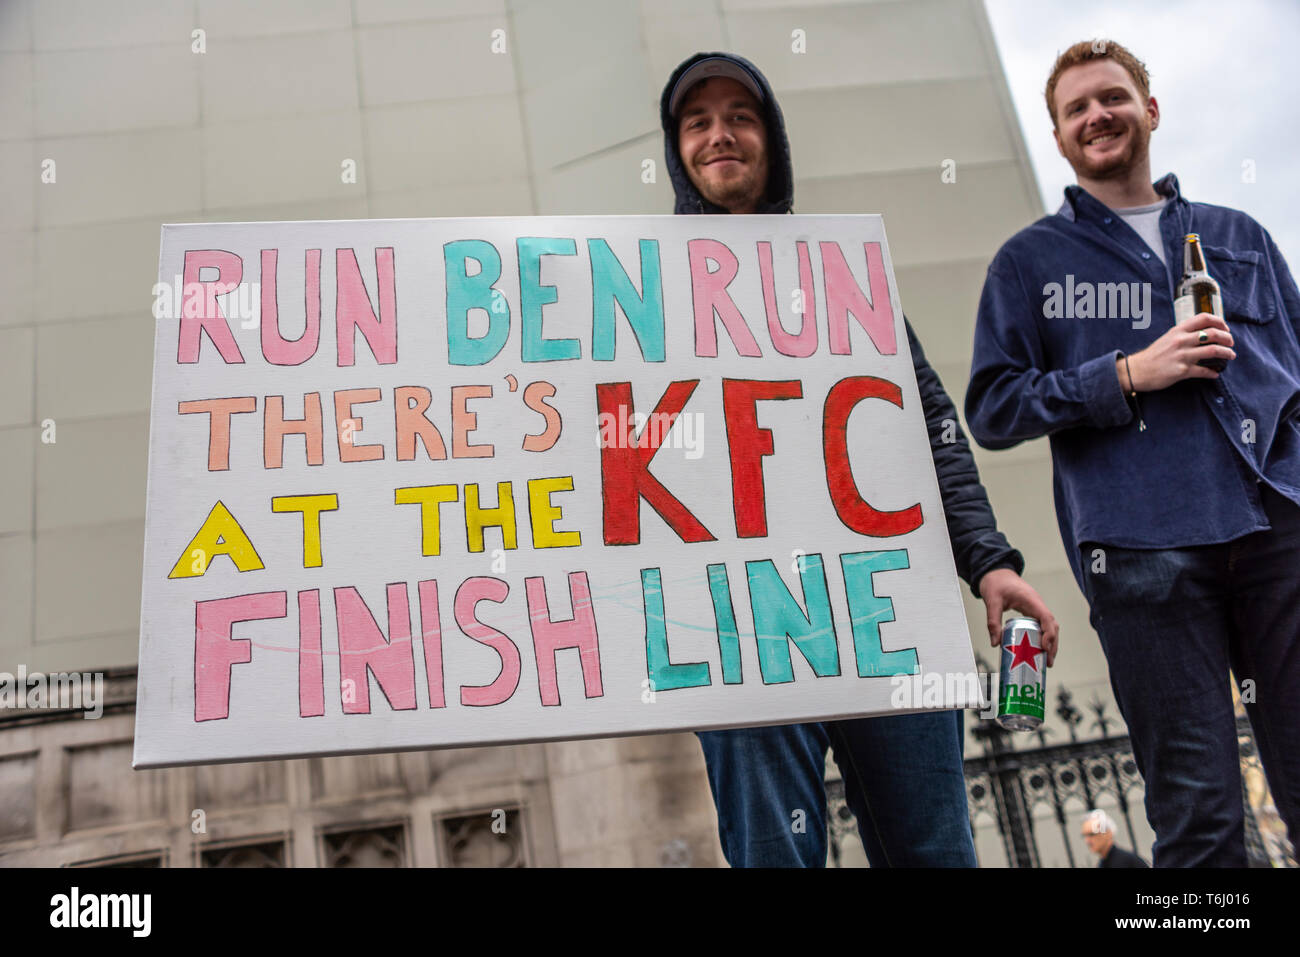 supporters-of-a-runner-in-the-london-marathon-2019-with-humorous-motivational-sign-saying-run-ben-run-theres-kfc-at-the-finish-line-placard-T6J016.jpg